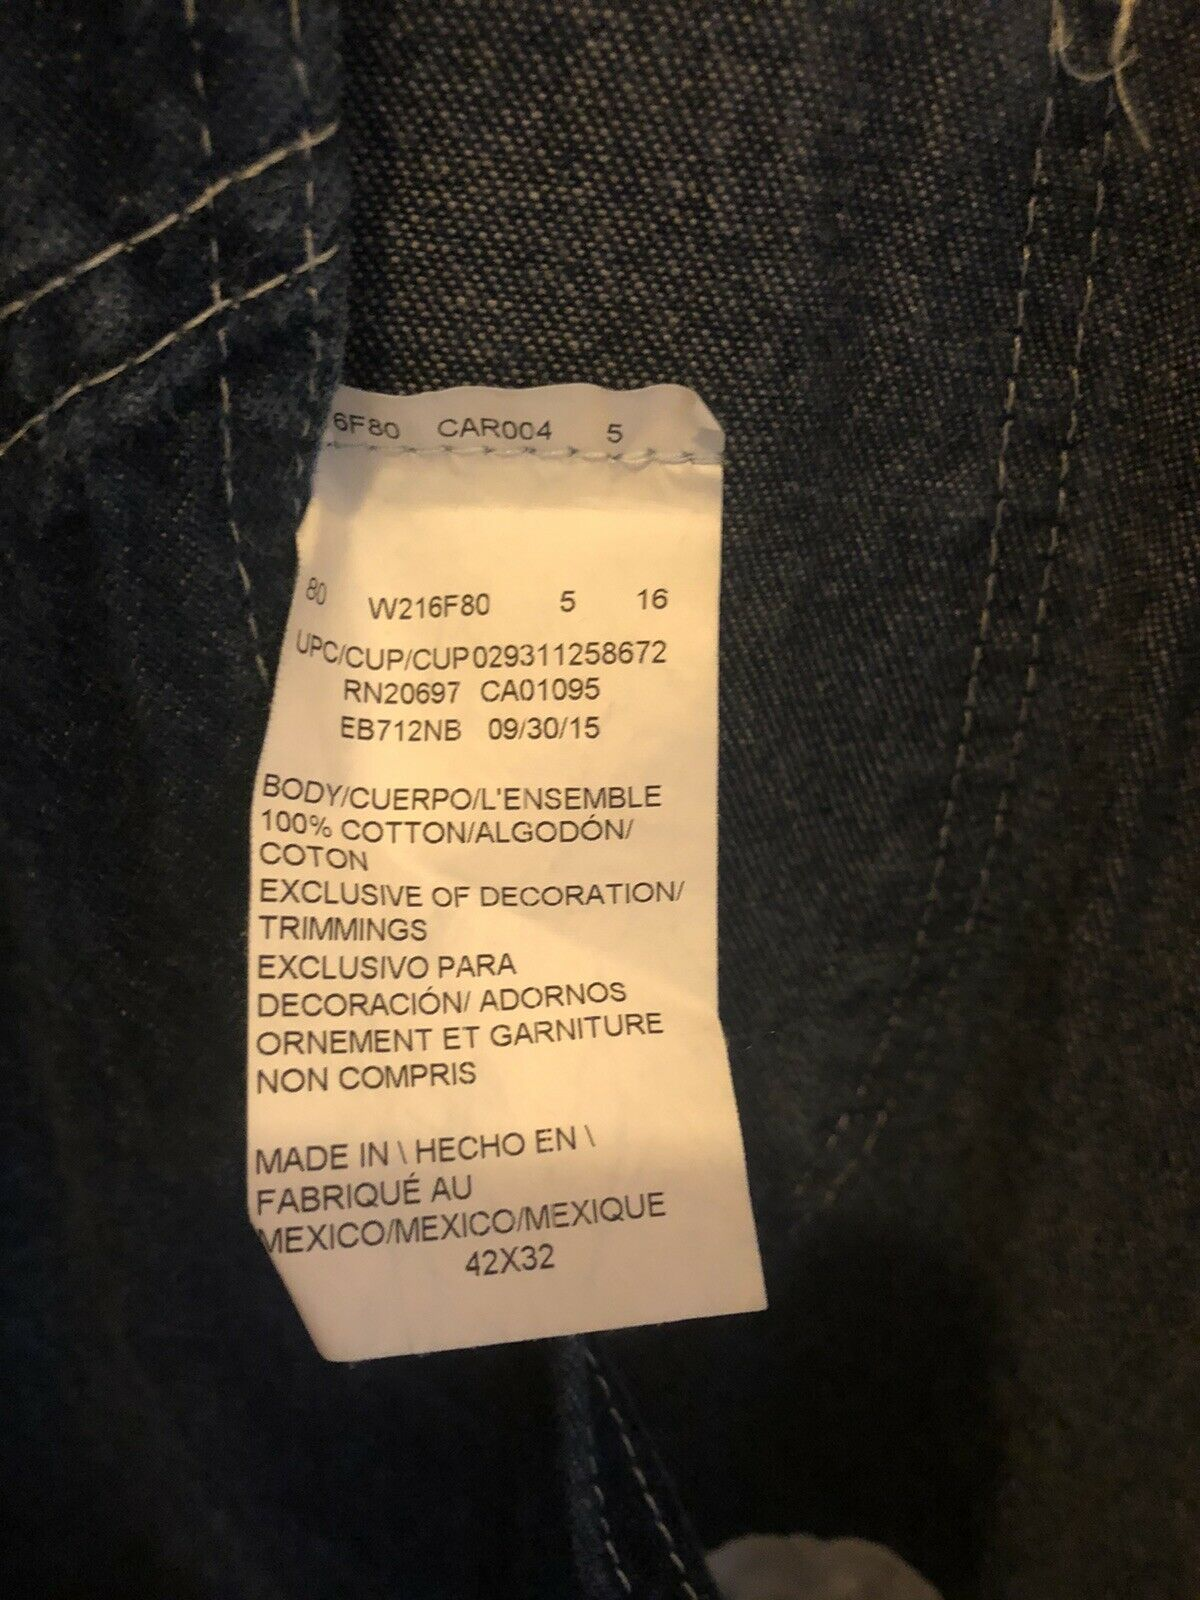 Dickies Jeans  Bib Overalls Size 42x32 - image 5